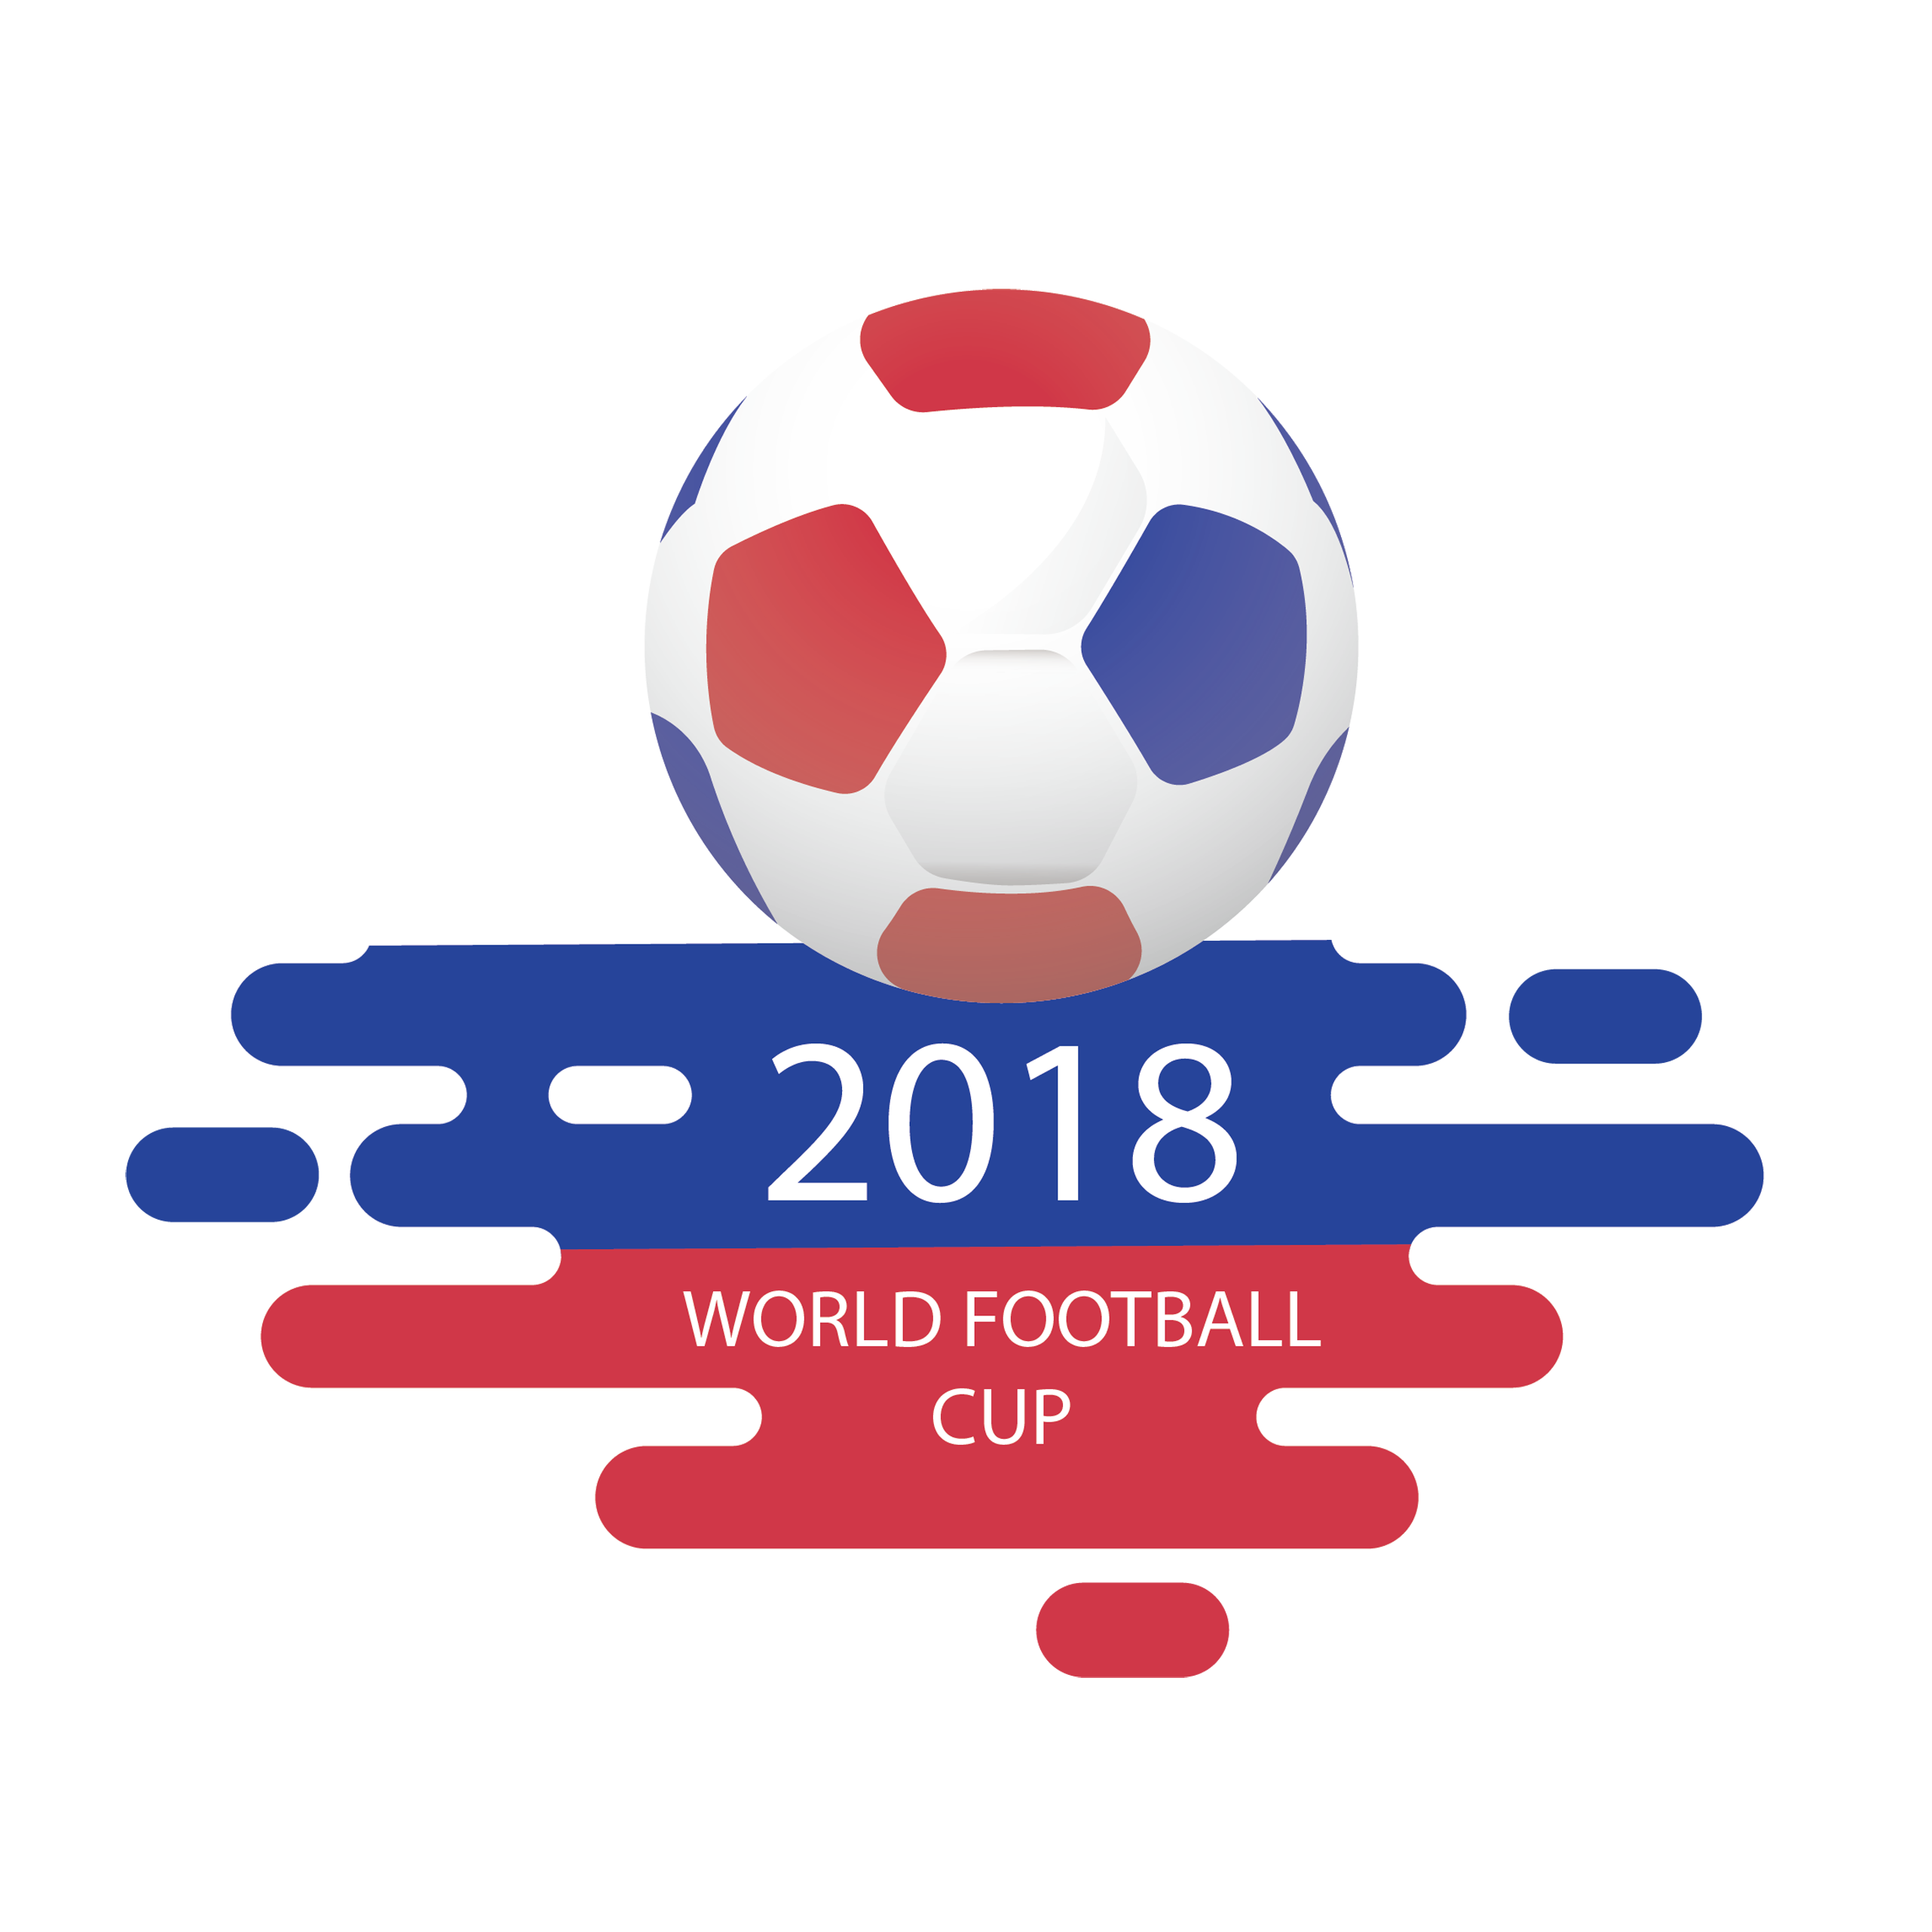 Cup Football Cham T-Shirt 2018 World Clothing PNG Image